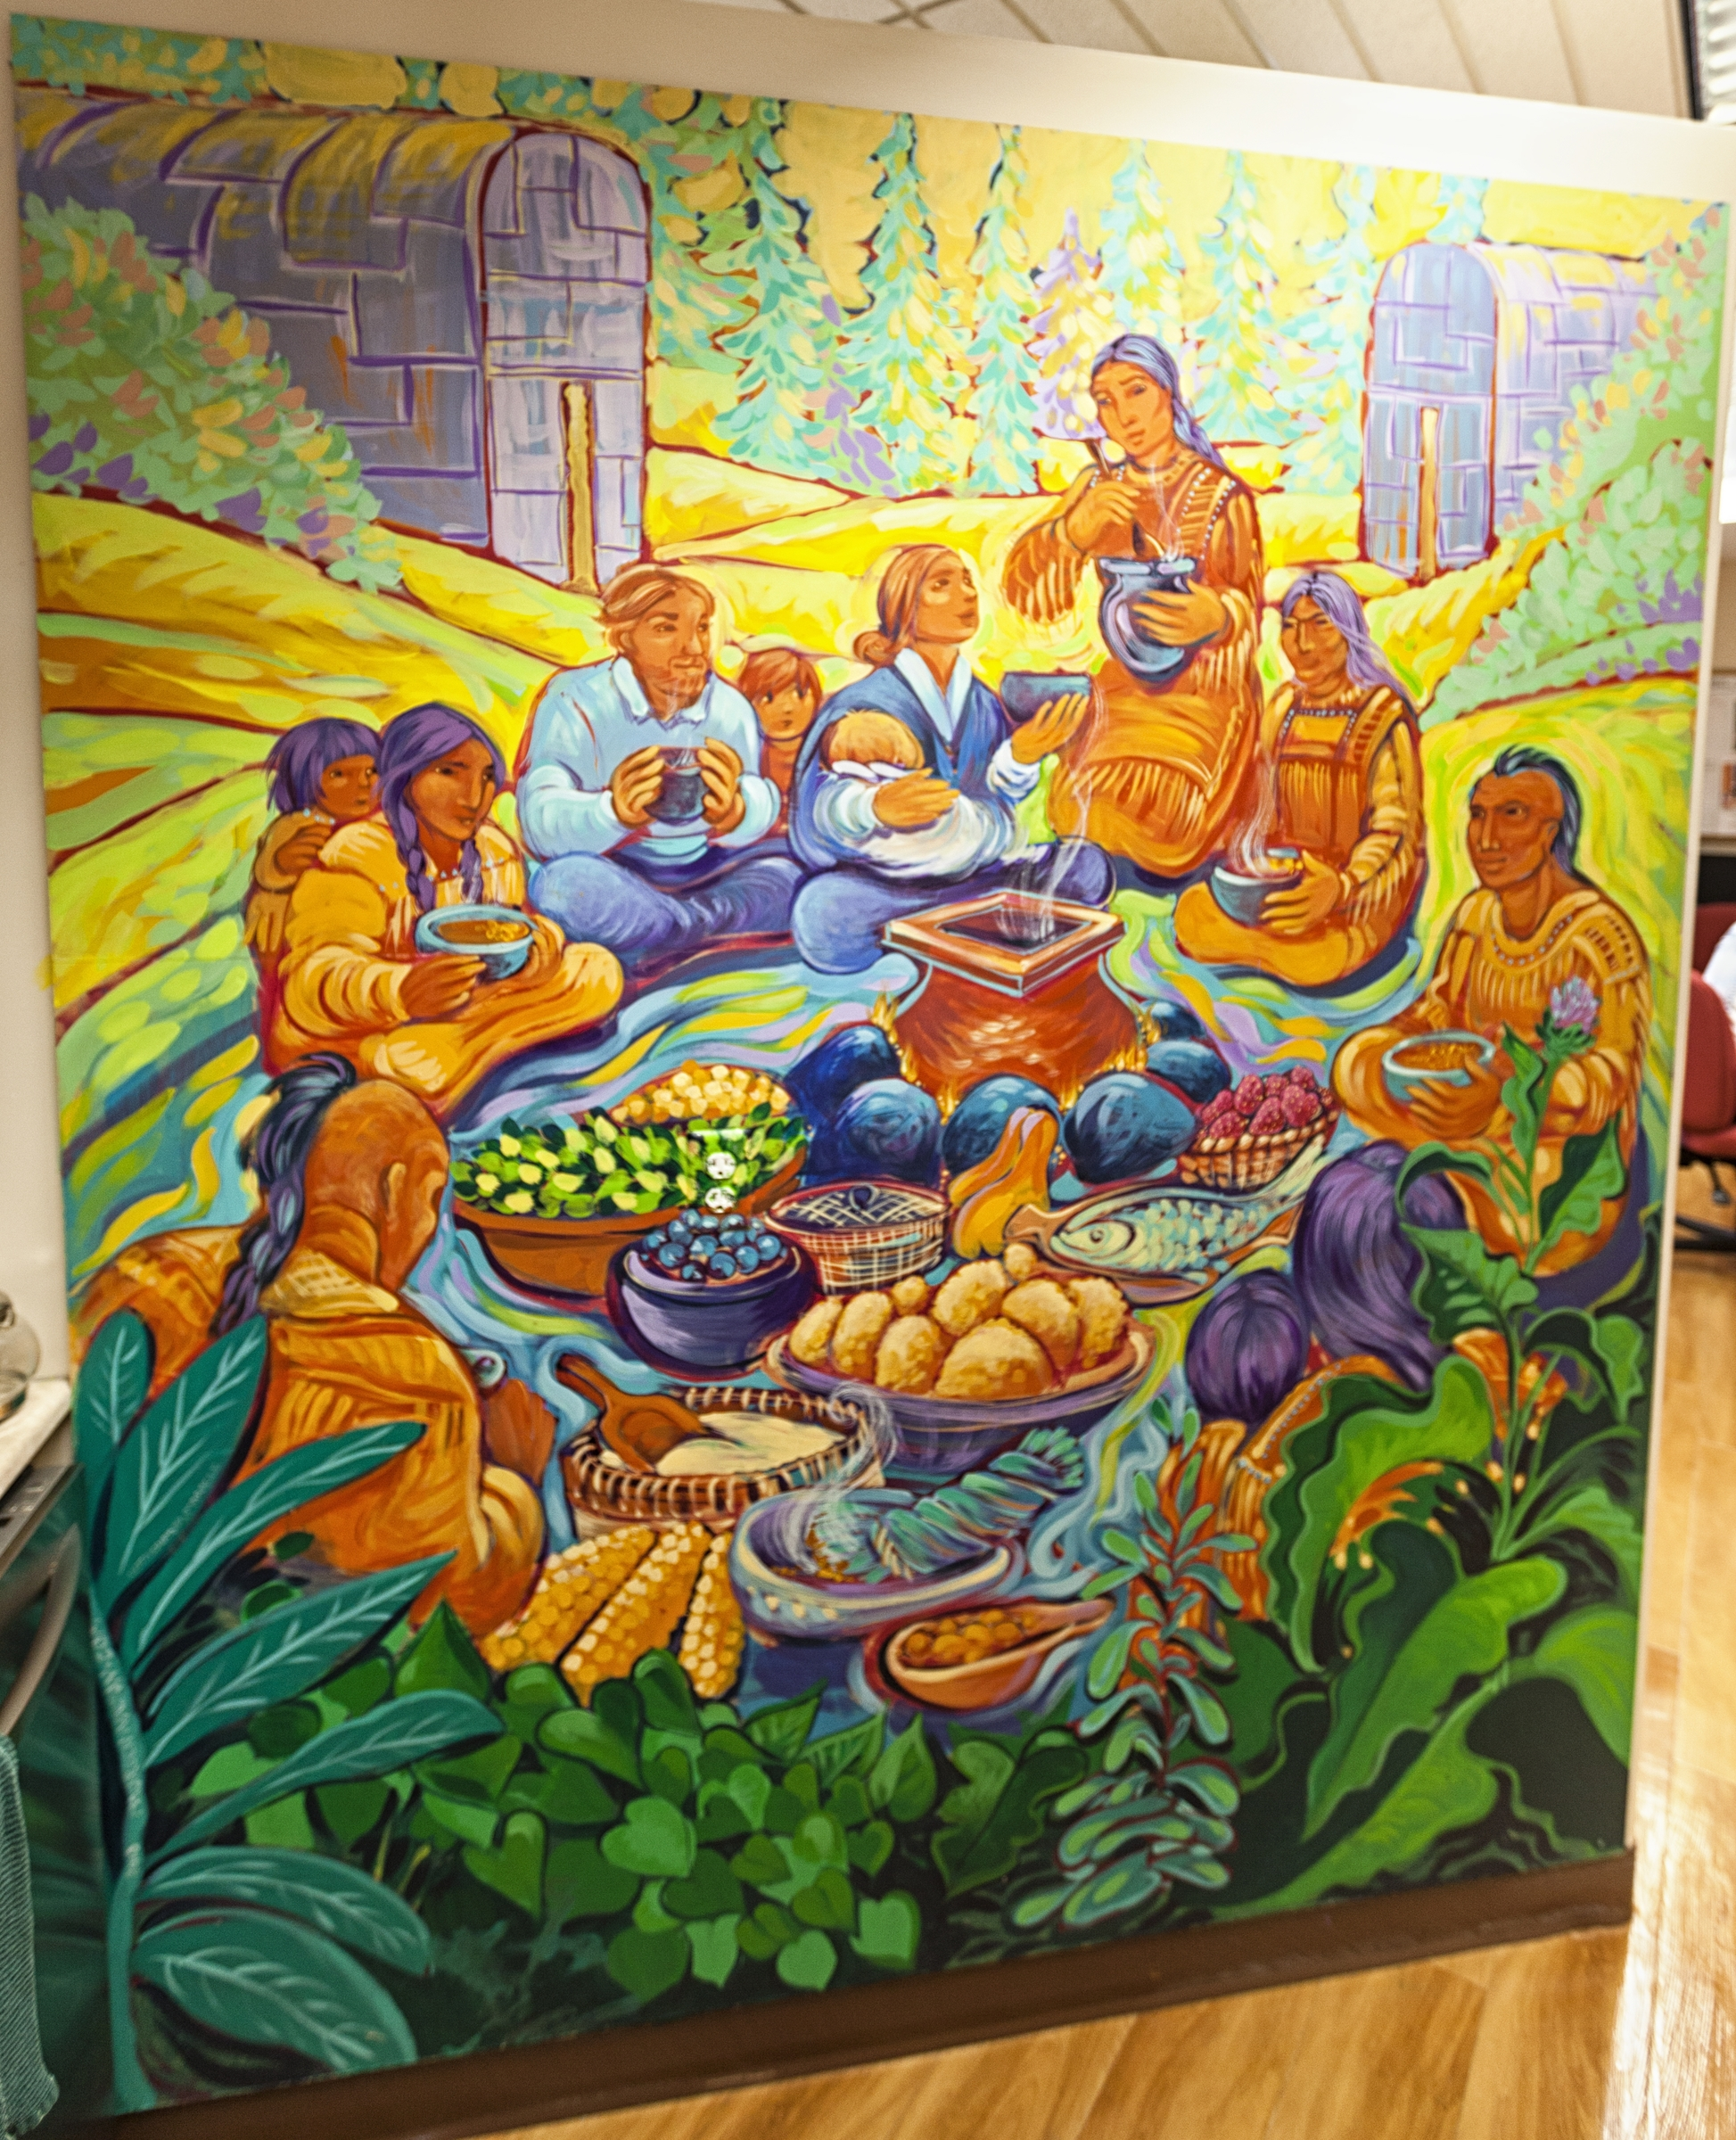 A colourful painting of a group of Indigenous people and a group of settlers sharing a meal together. They sit in a circle on green grass, surrounded by trees. Longhouses stand in the background.